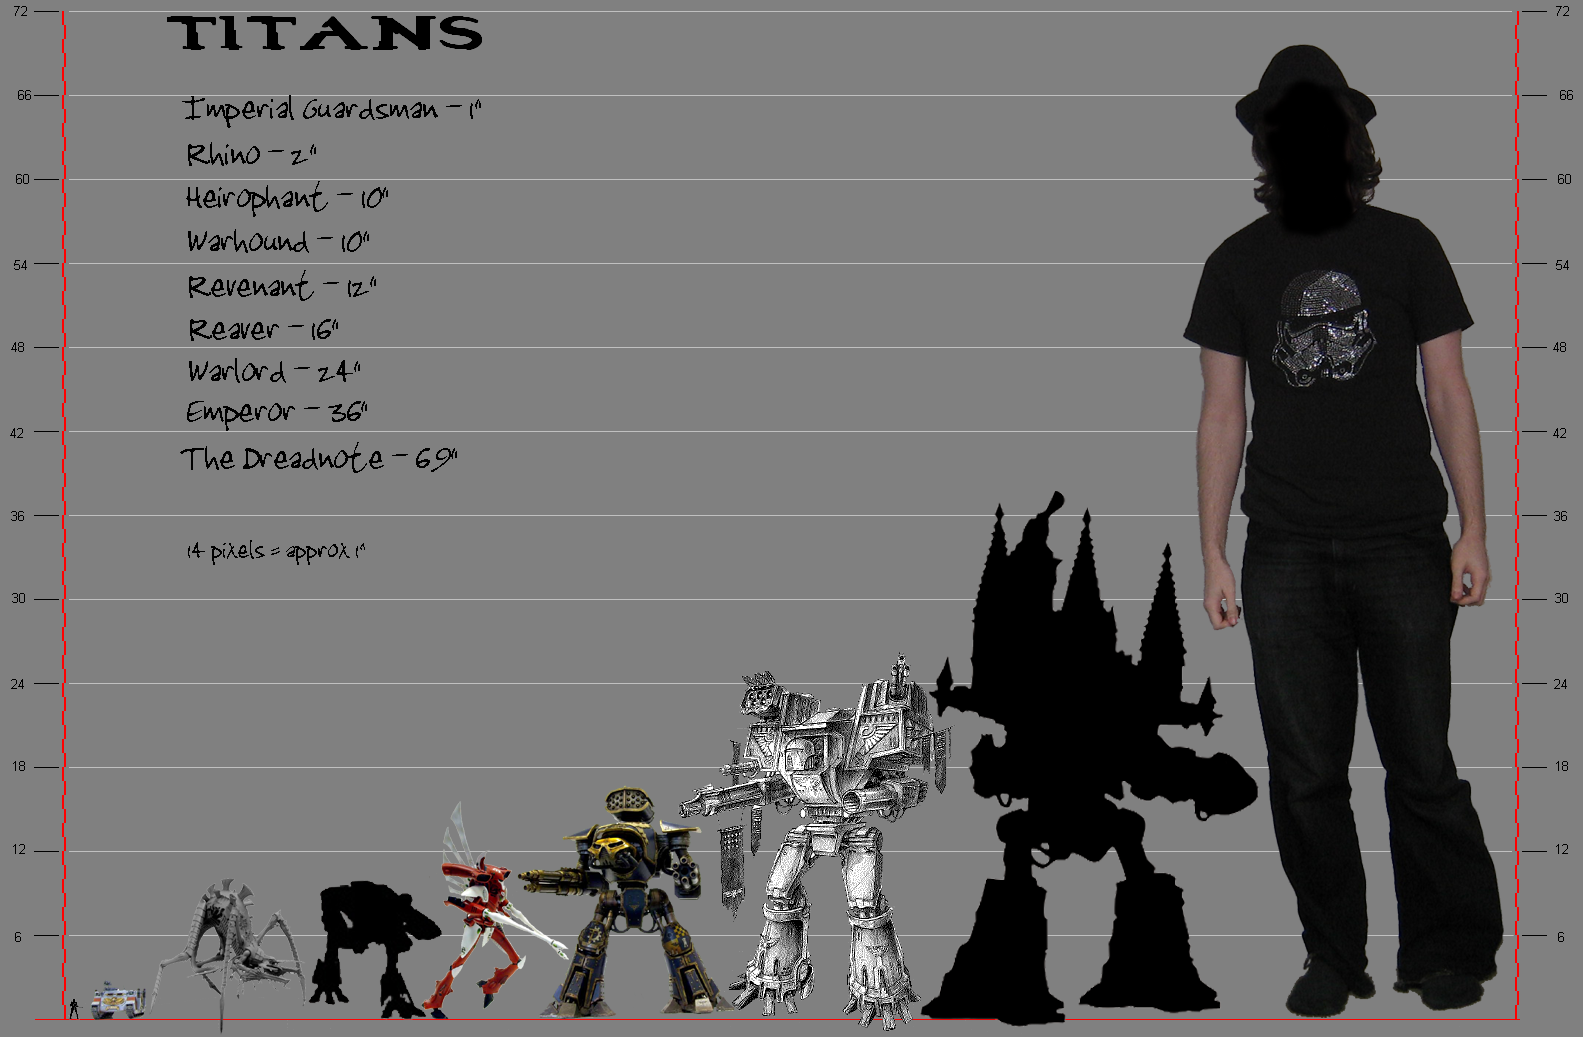 Emperor, Heirophant, Imperator, Reaver, Revenant, Scale, Size Comparison, Titan, Warhound, Warlord